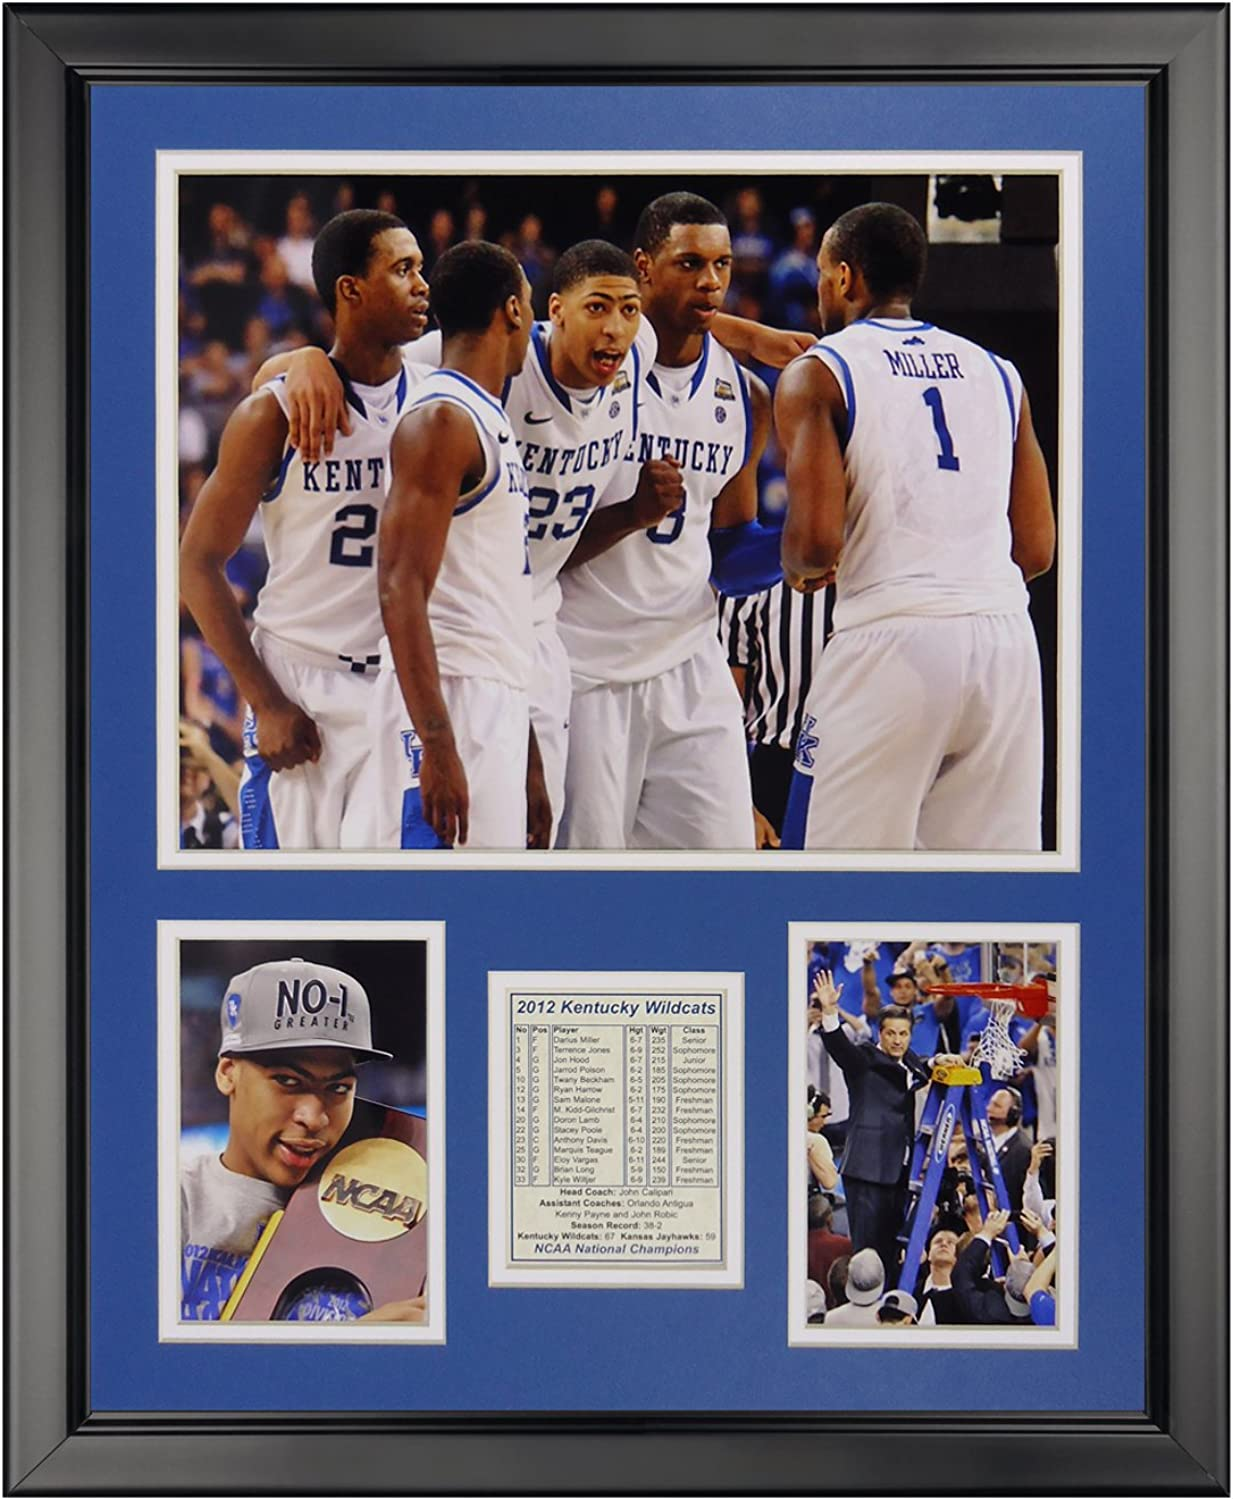 Legends Never Die 2012 Kentucky Wildcats National Champions Collage Photo Frame, 16  x 20